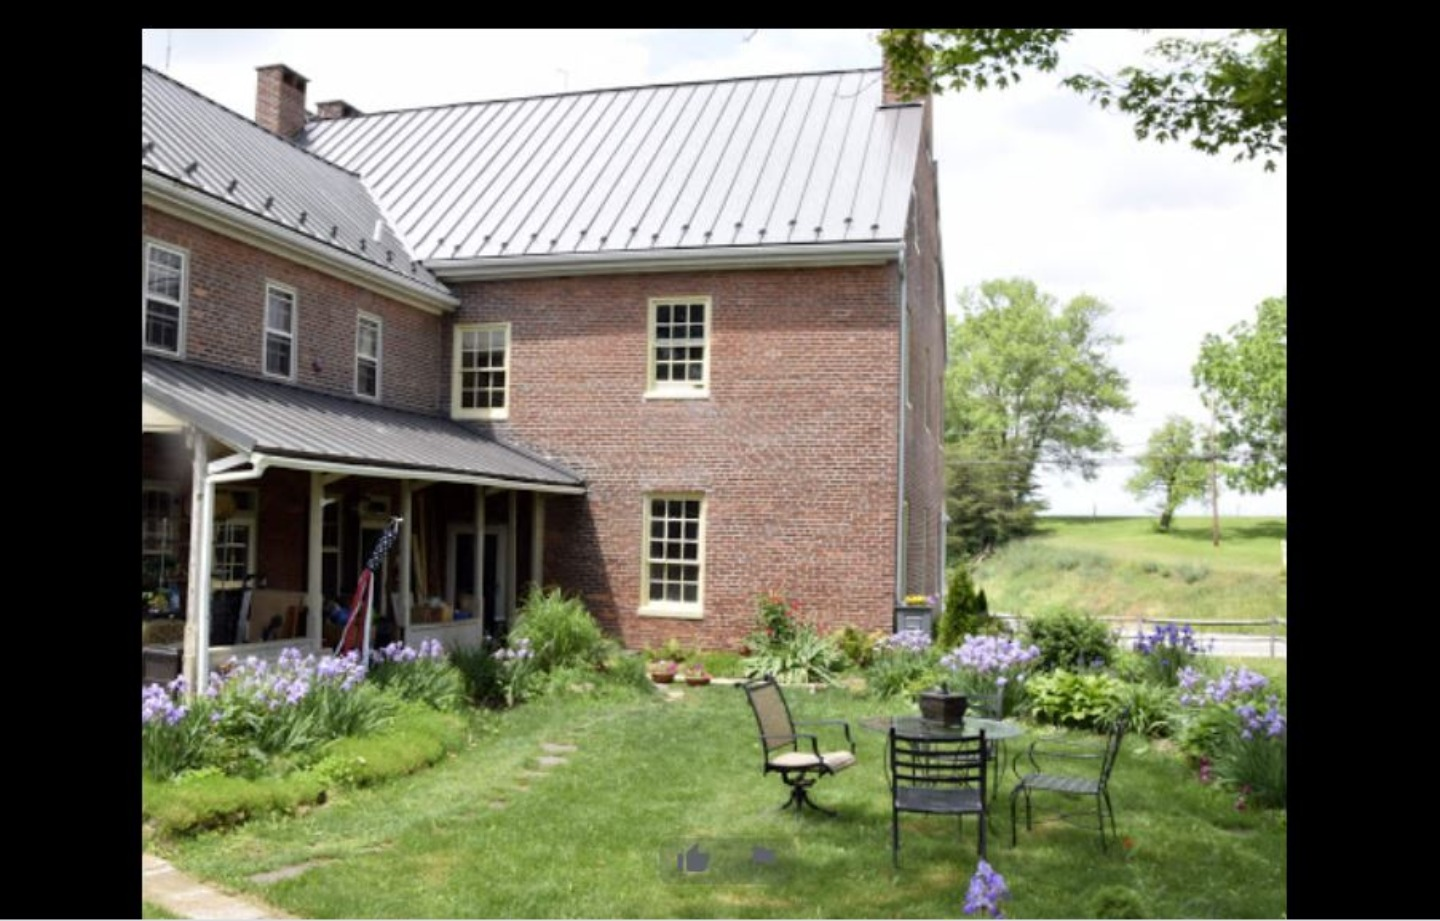 A large brick building with grass in front of a house at The 1788 Inn.